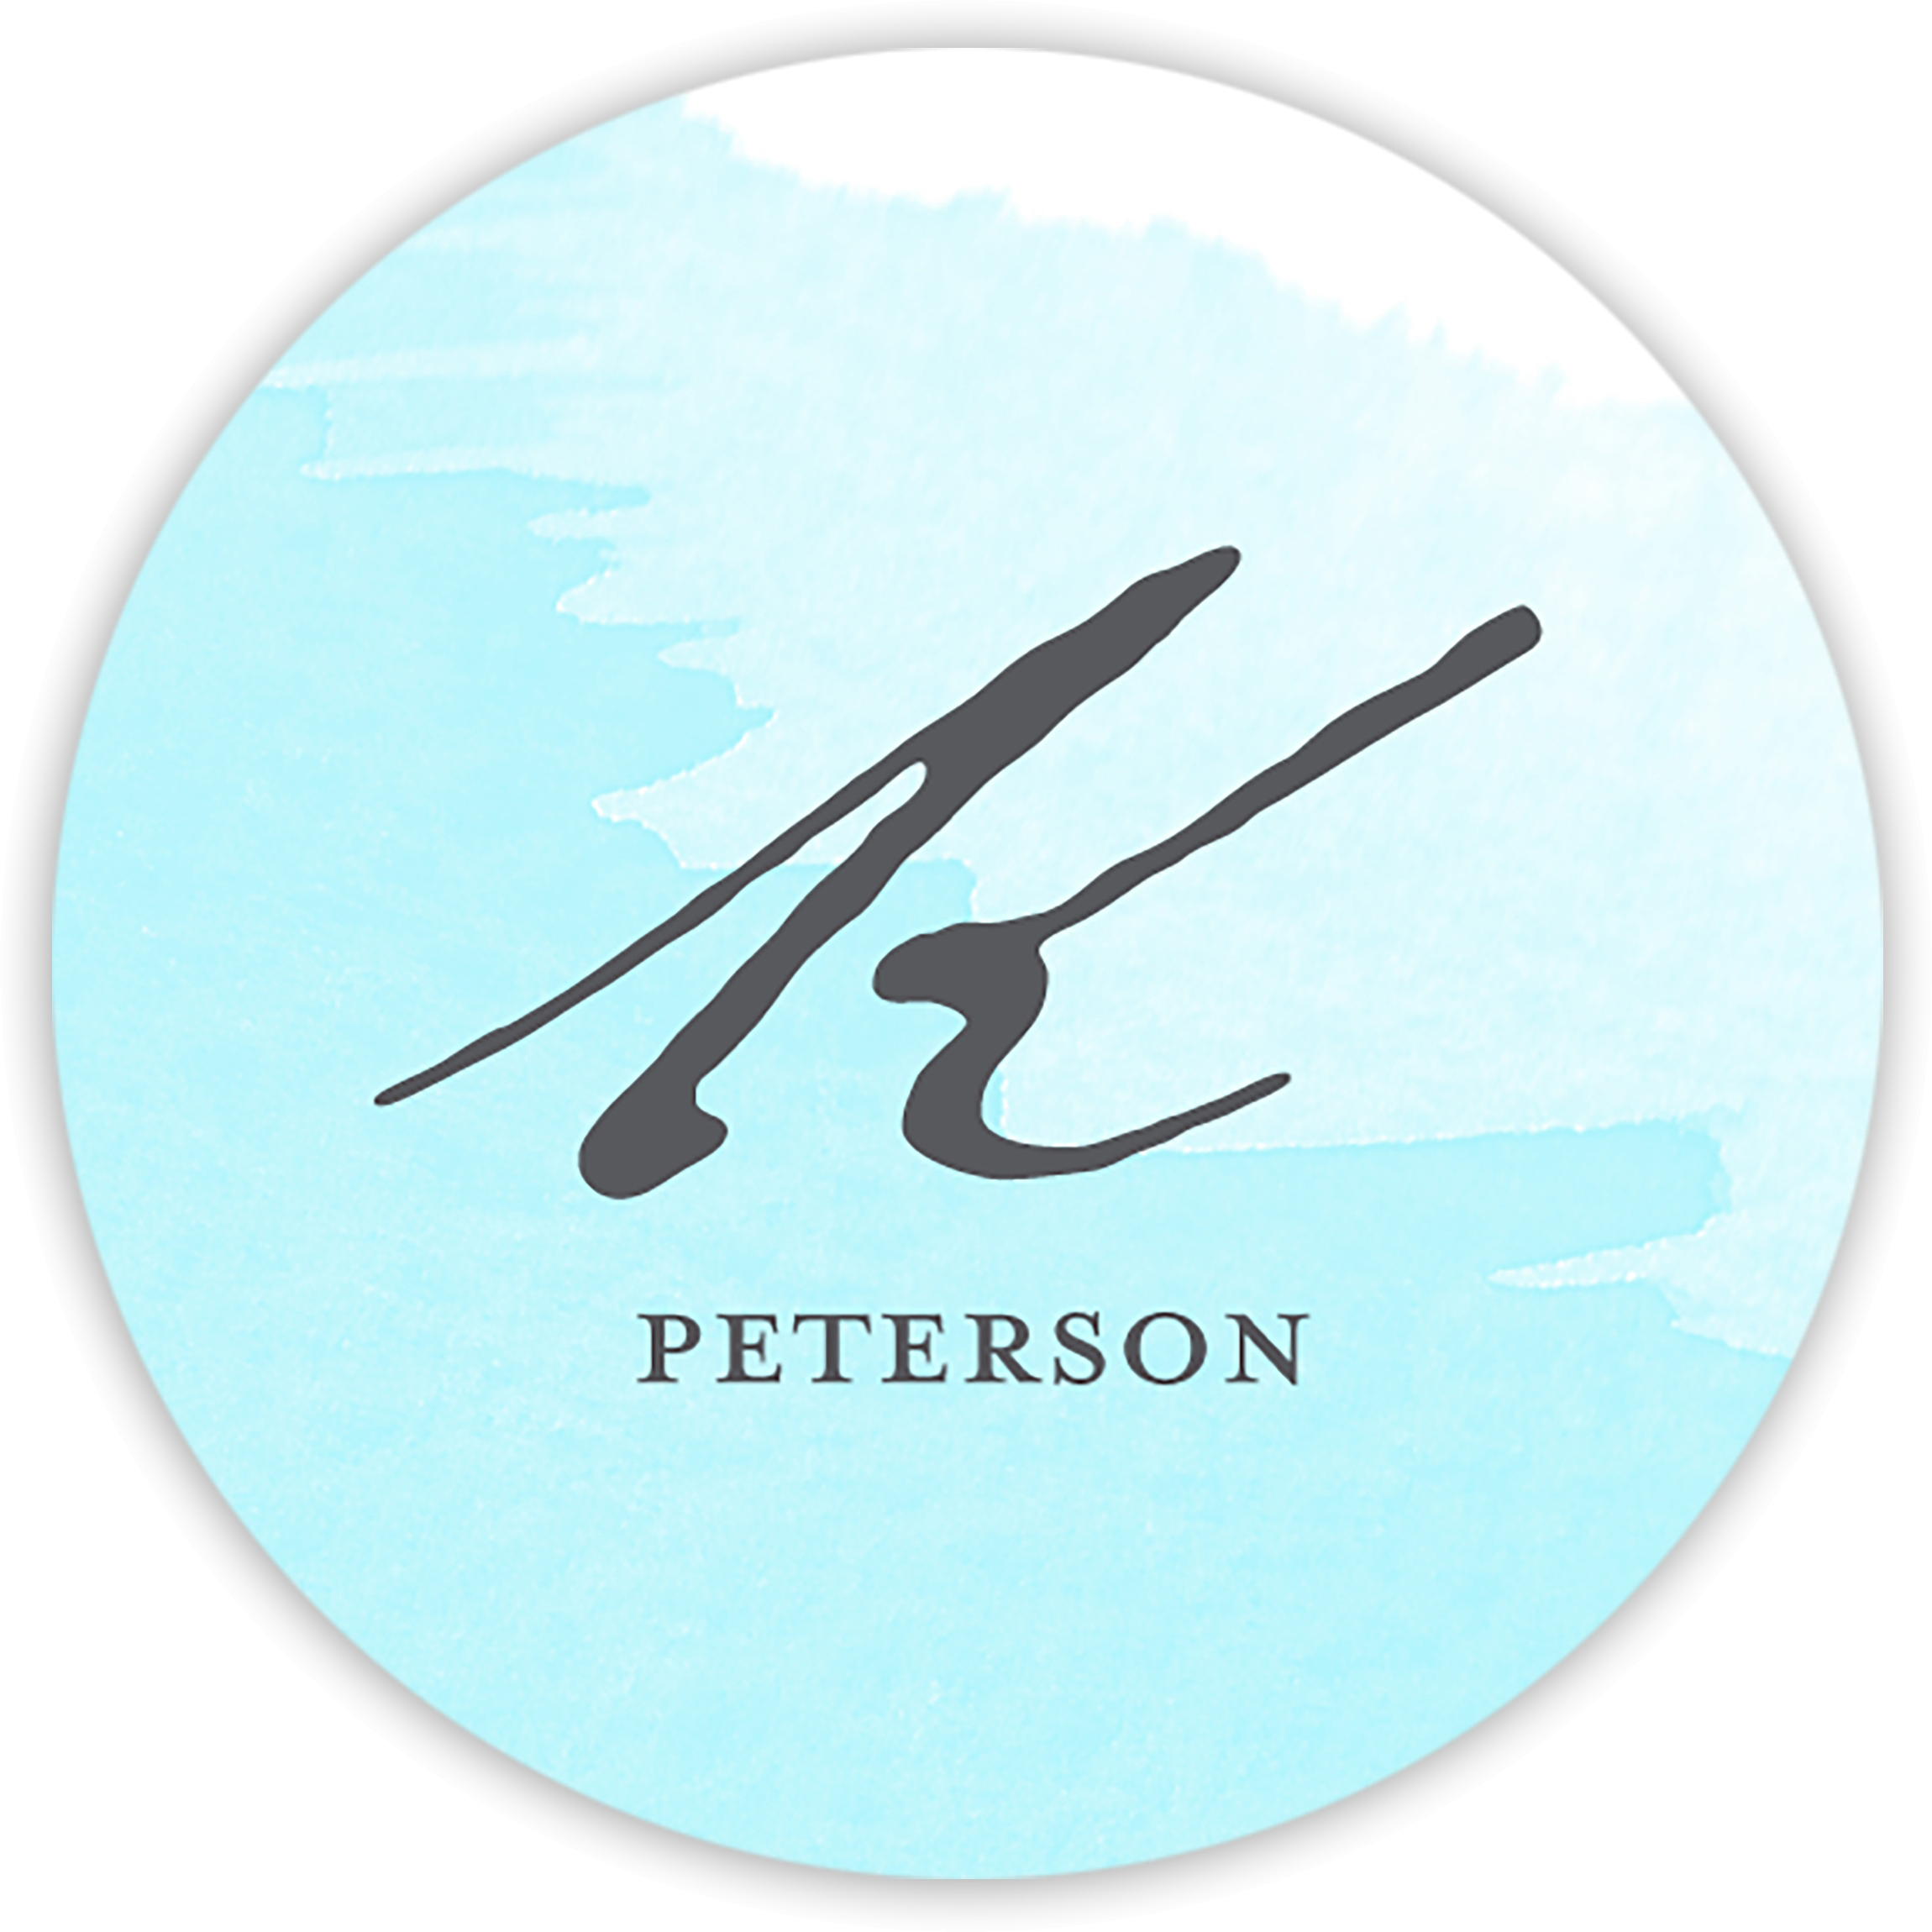 Watercolor Note - Personalized 1.75 Circle Seal Sticker